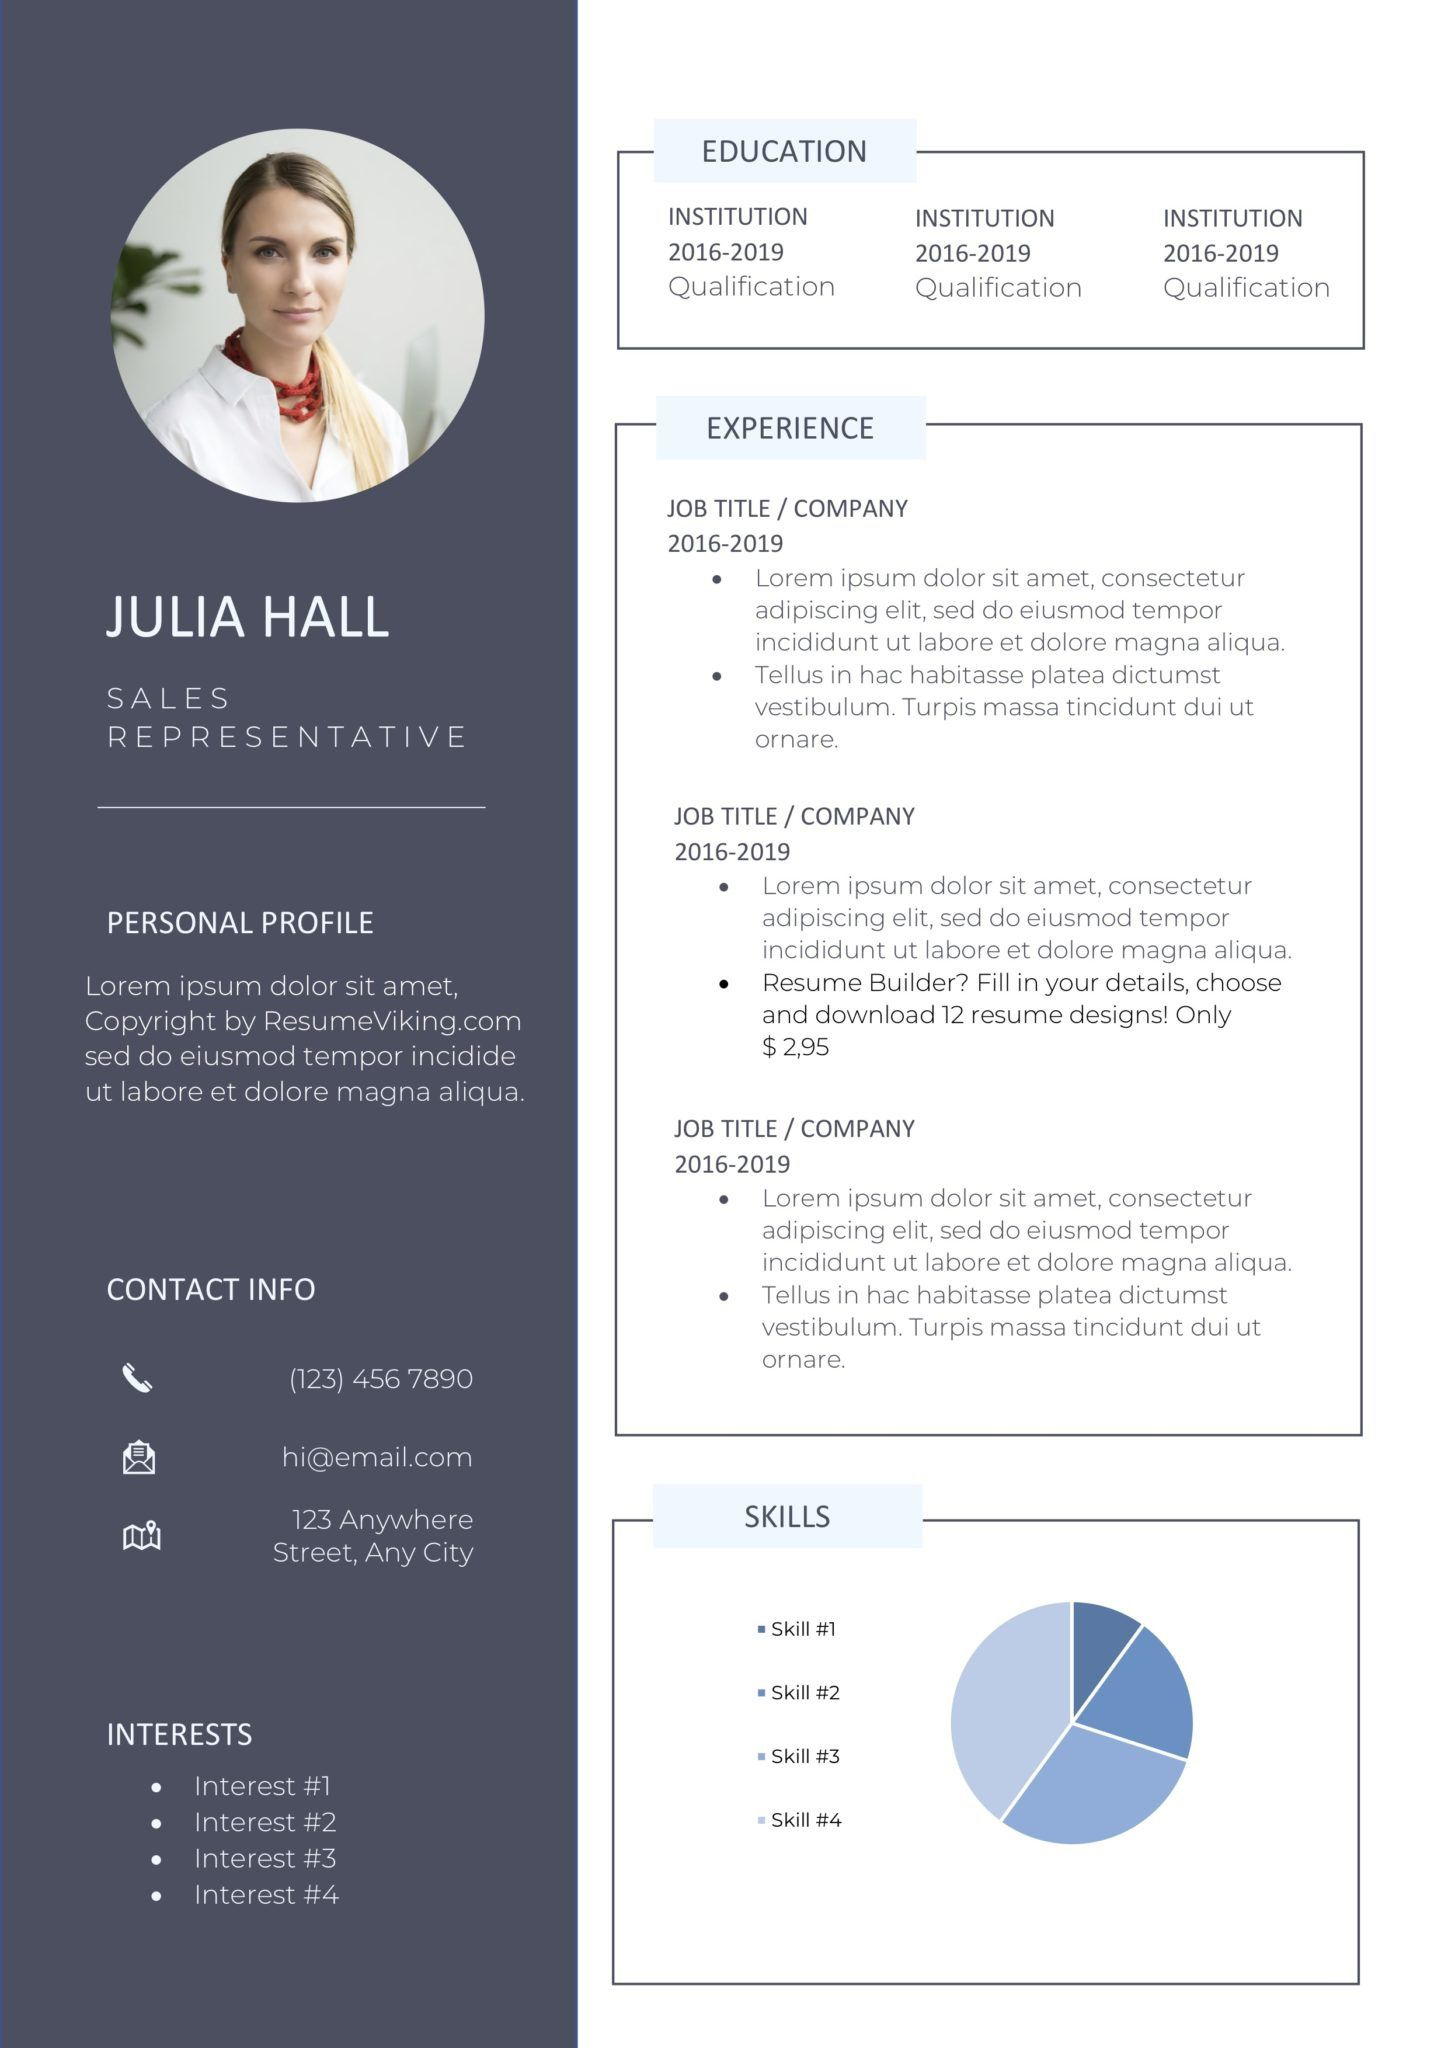 012 Unique Cv Template Free Download Word Doc High Def  Editable Document For Fresher Student EngineerFull